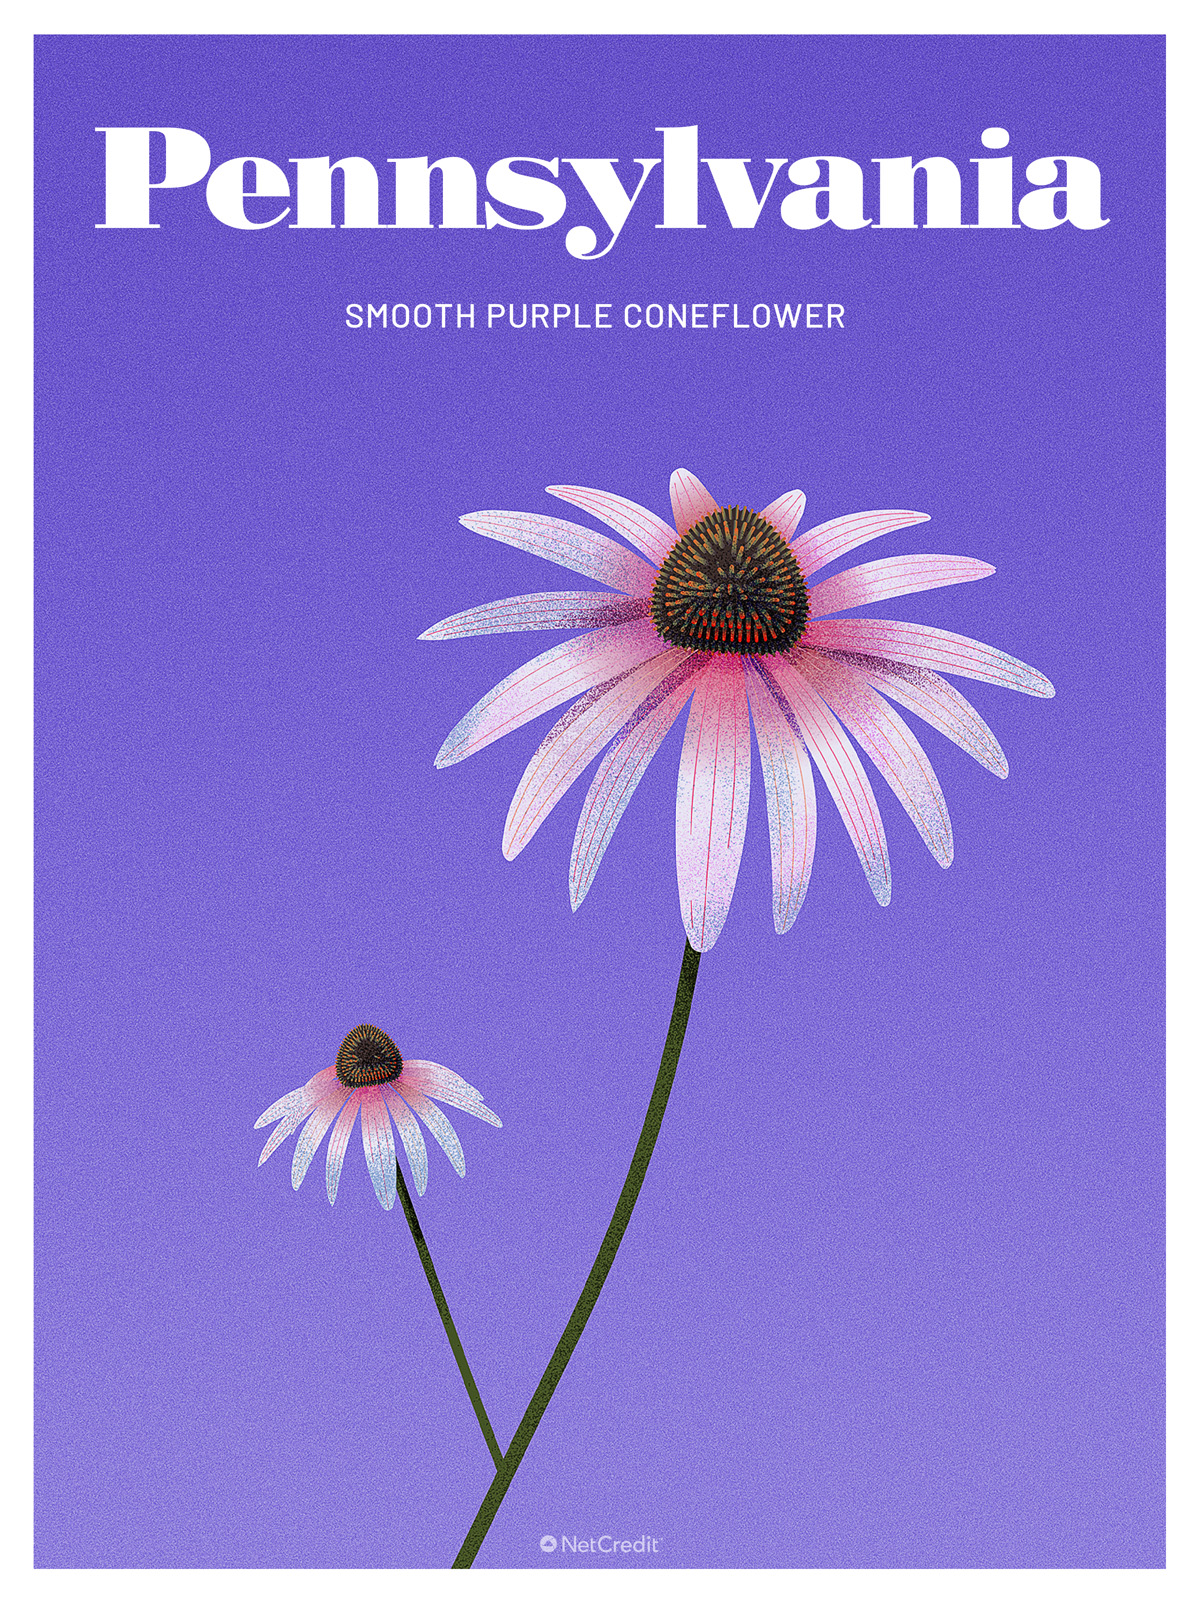 Endangered Plant in Pennsylvania: Smooth Purple Coneflower